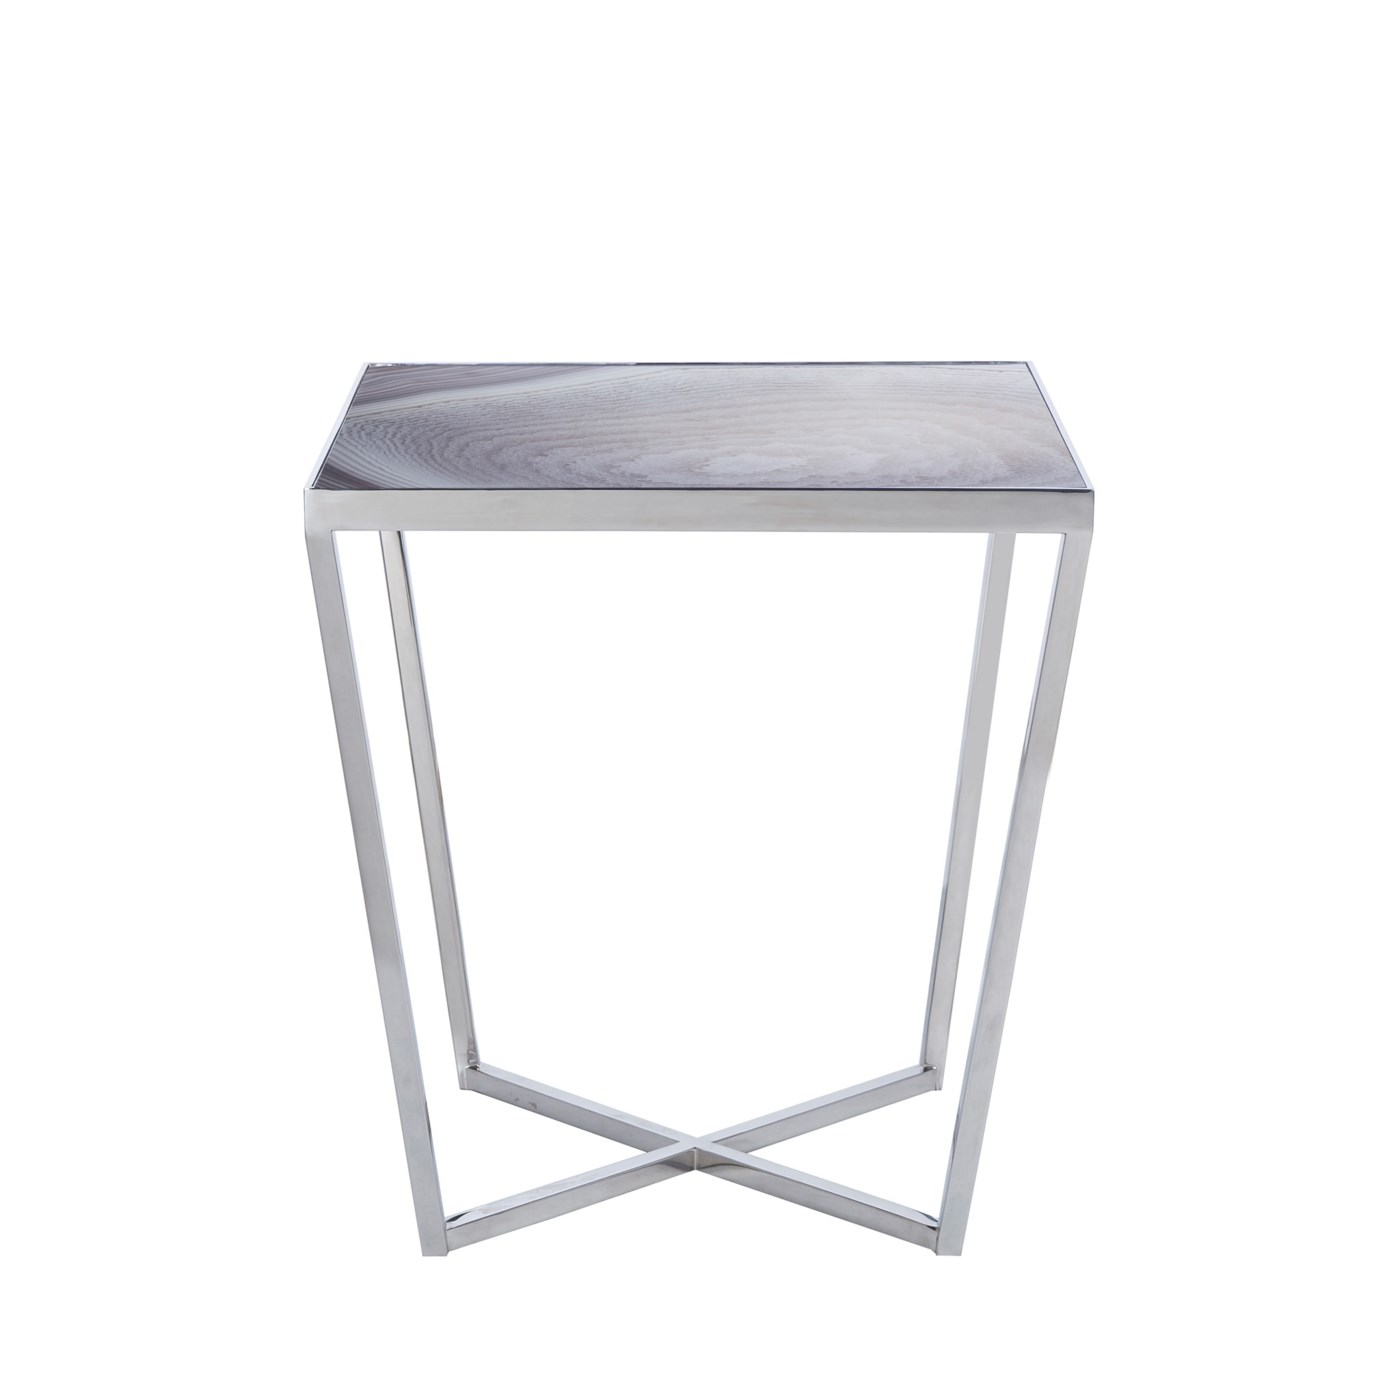 jaxson side table natural agate coffee tables resource decor glass accent gold decorative accessories lounge chairs microwave stand target tall corner sofa clearance furniture